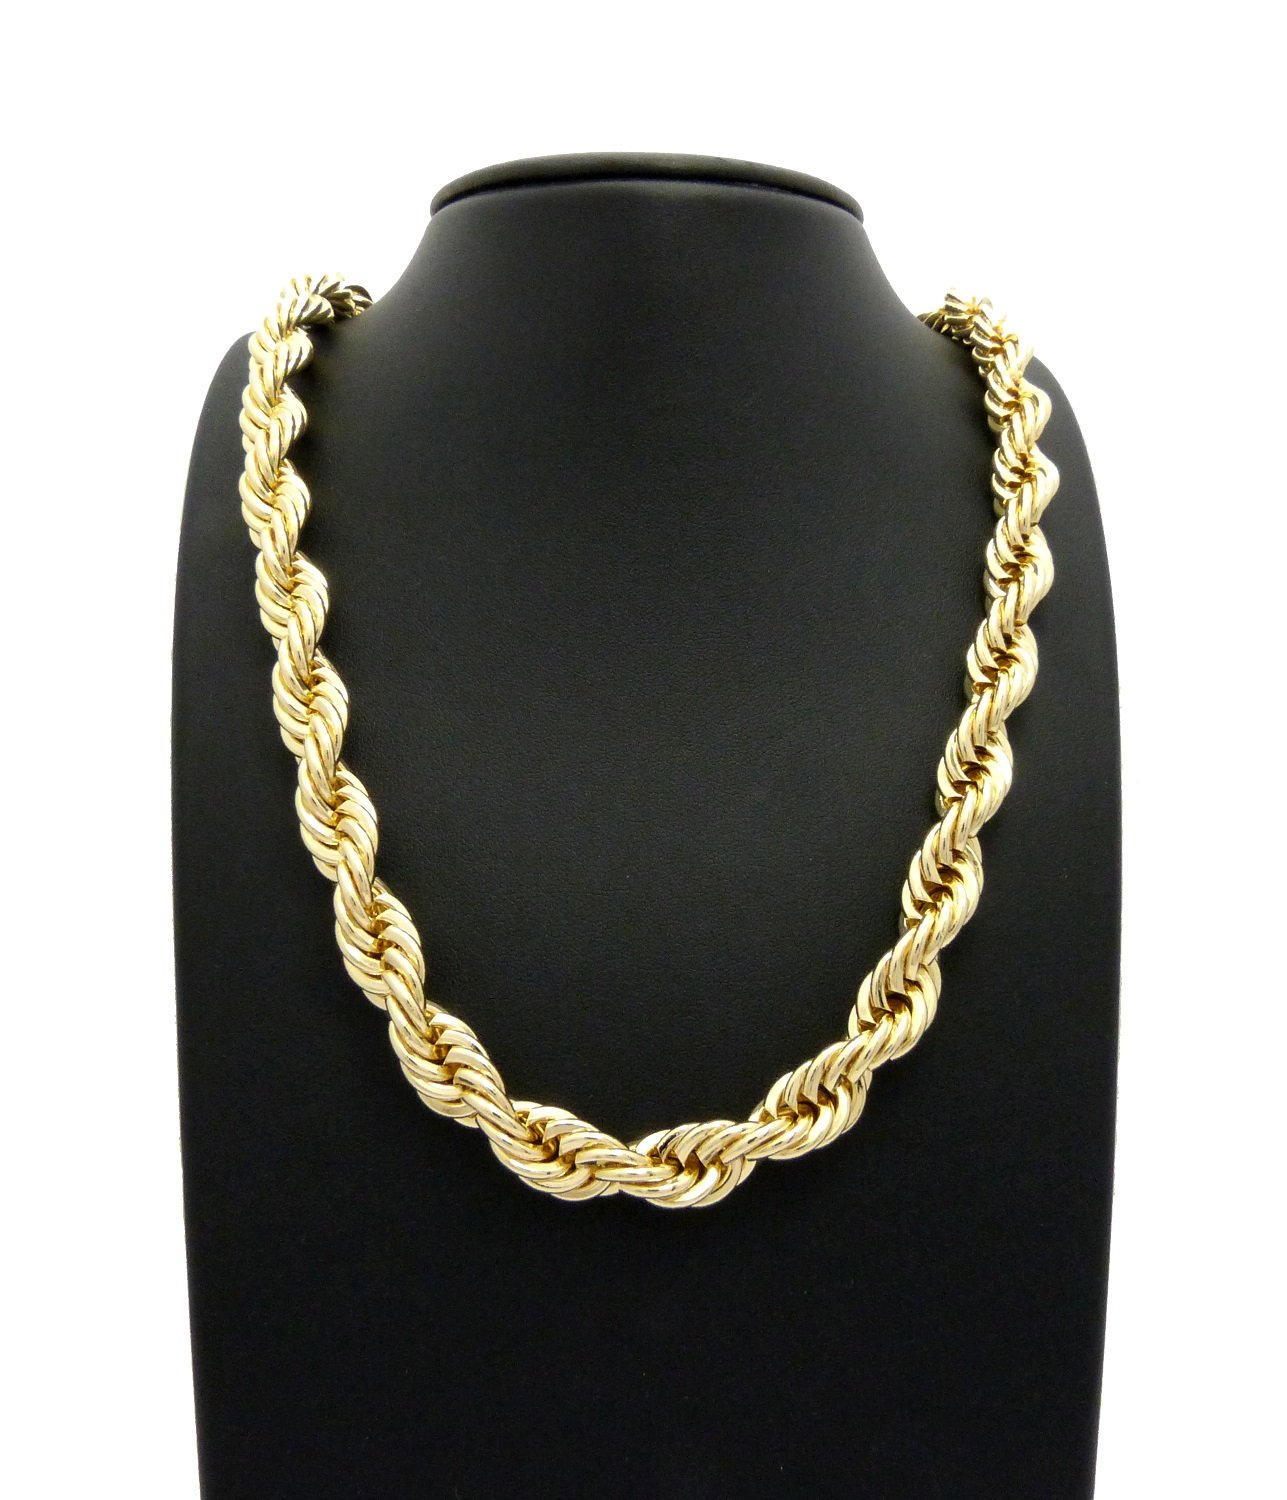 Fashion 21 Hip Hop 80' Unisex Rapper's 8, 10, 12mm Hollow Rope Chain Necklace in Gold, Silver Tone RC2421G